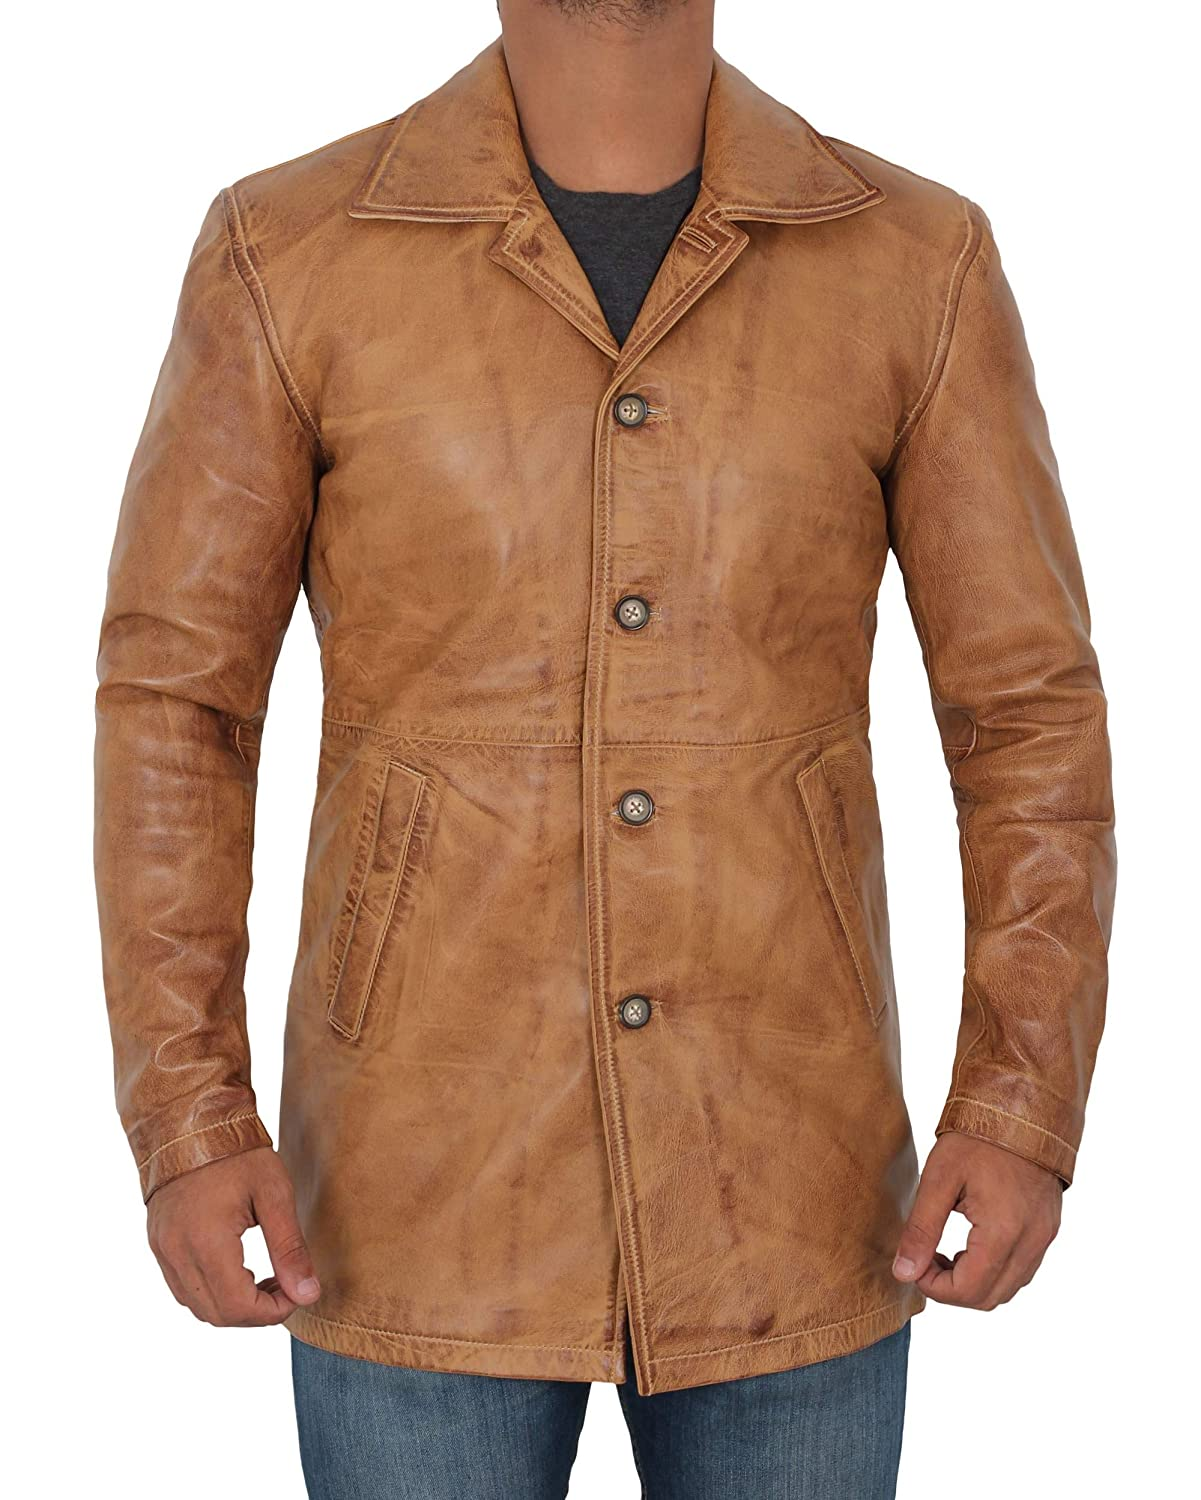 52f82ad8c Distressed Leather Jacket Men - Genuine Lambskin Leather Coats for Men